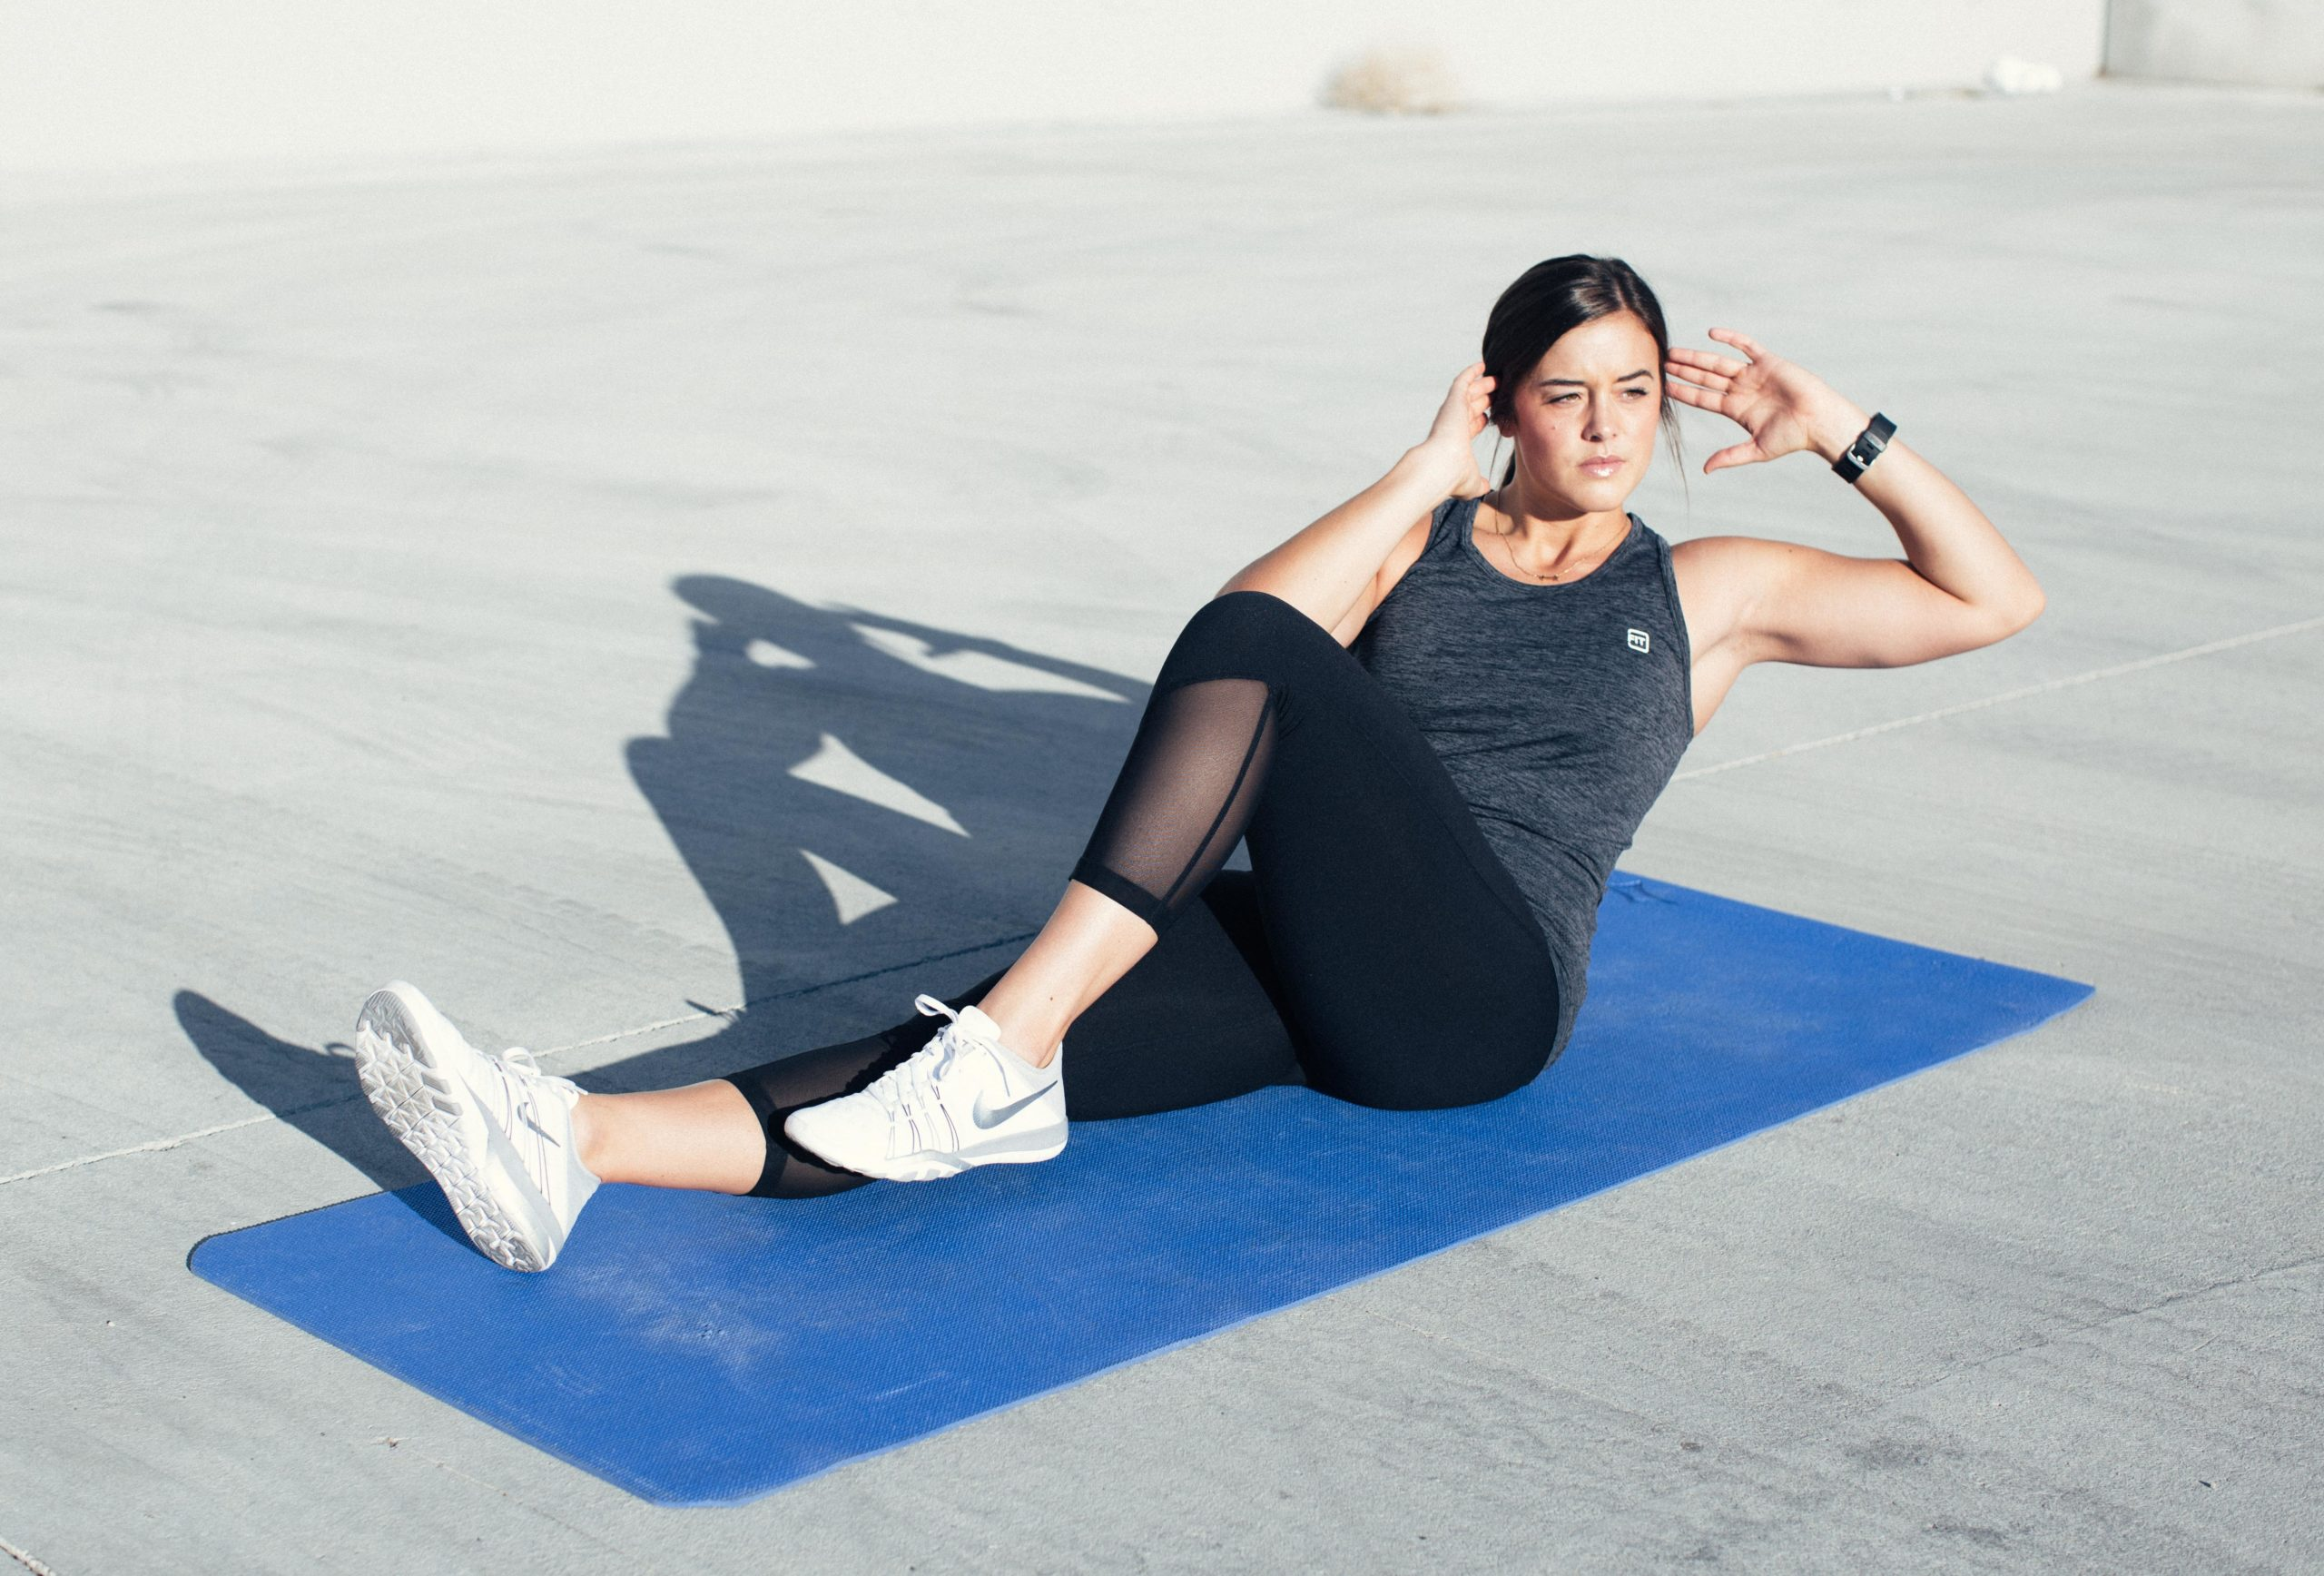 woman abdominal exercises cycle crunches